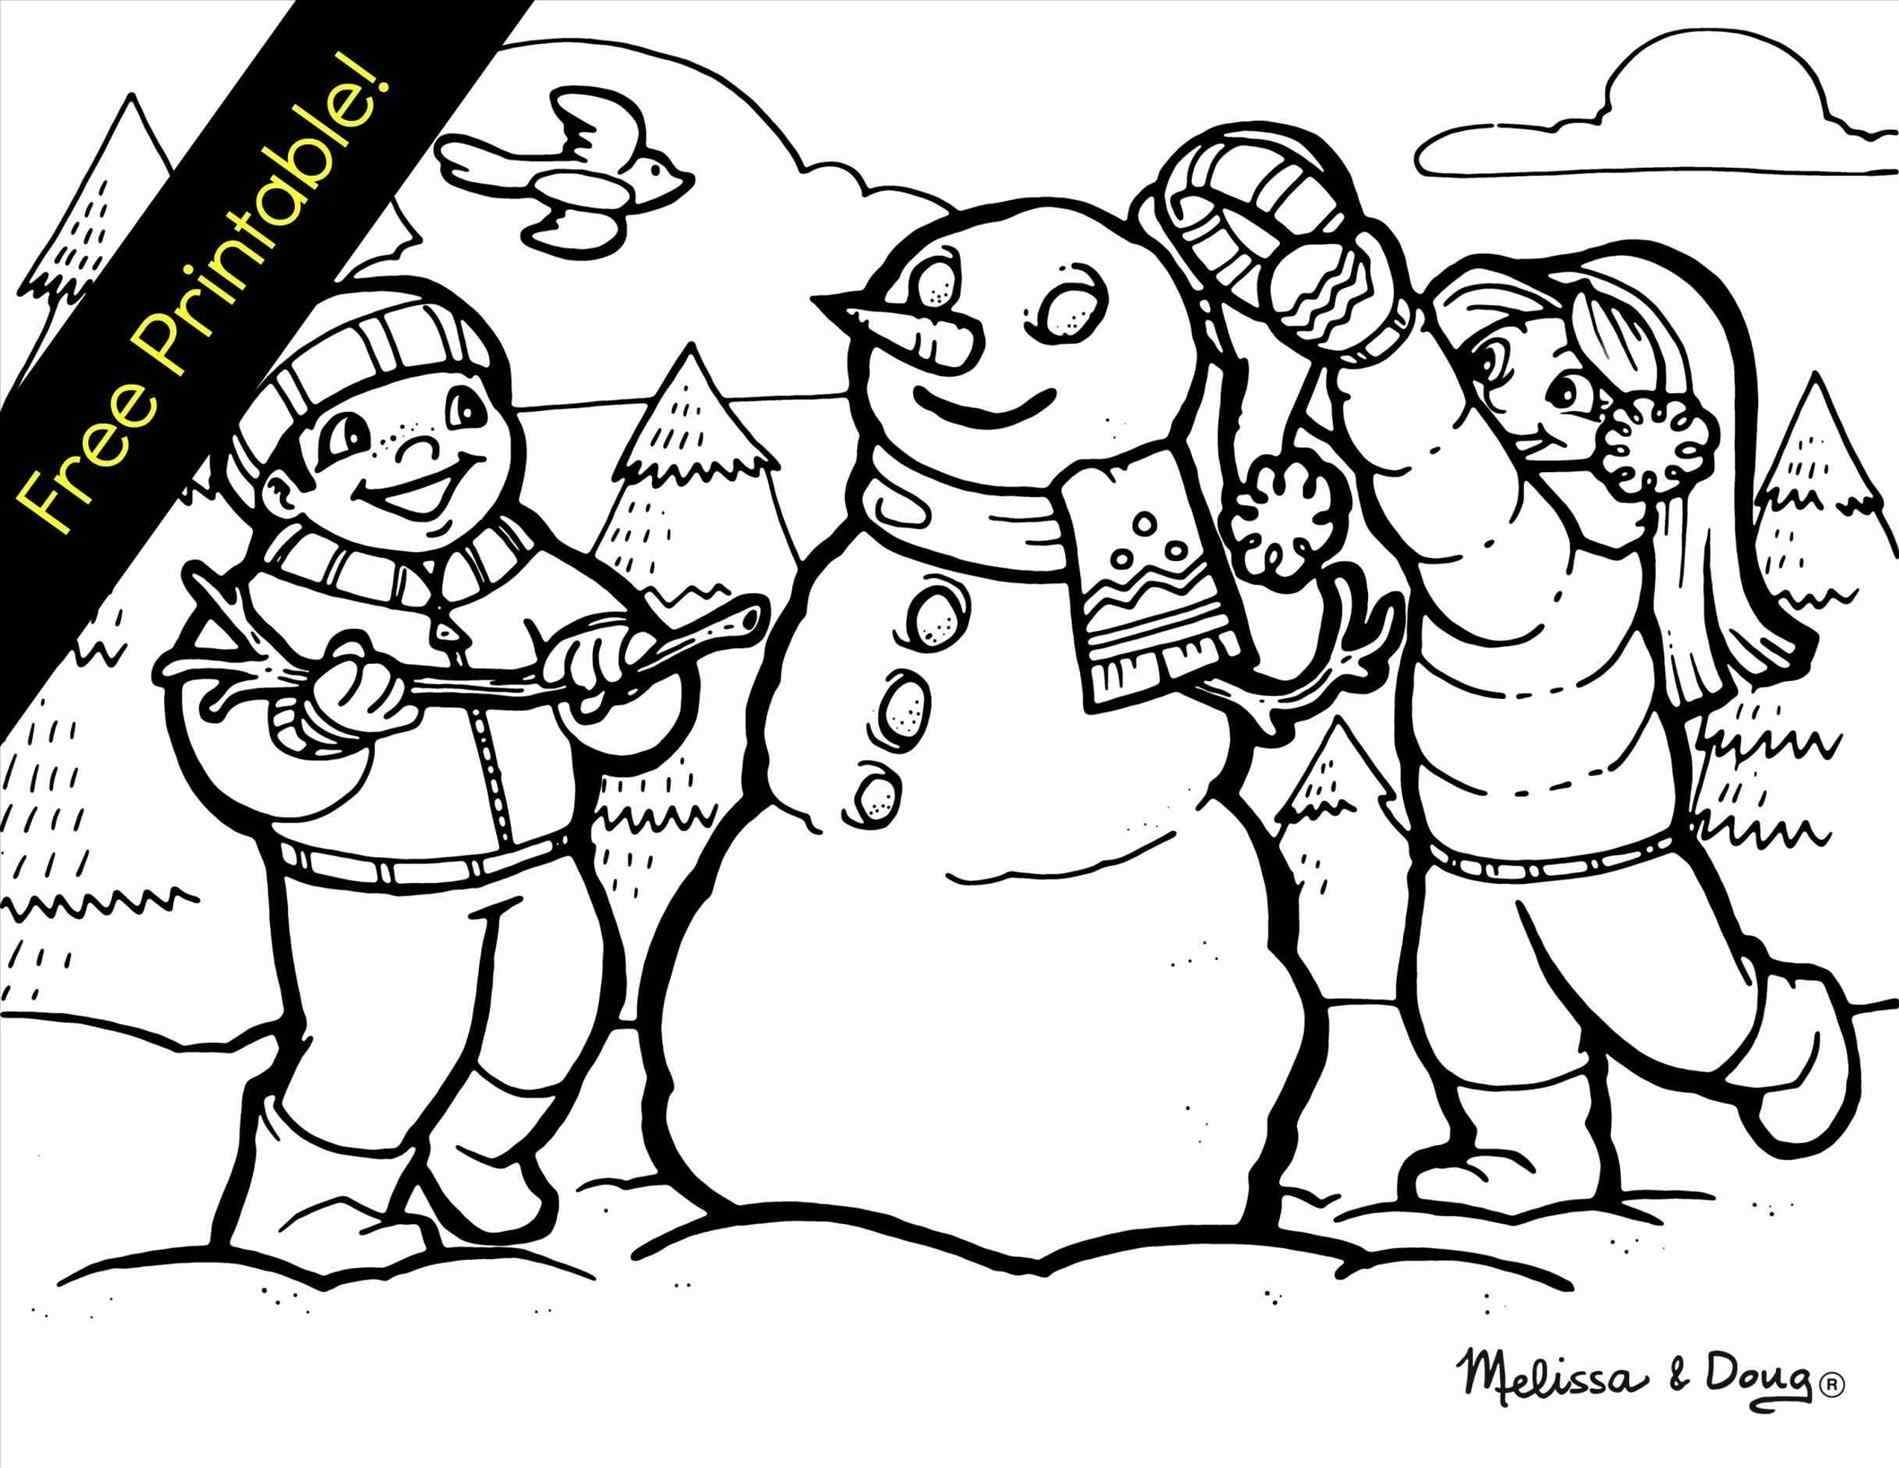 wildlife coloring pages - easy winter drawings for kids